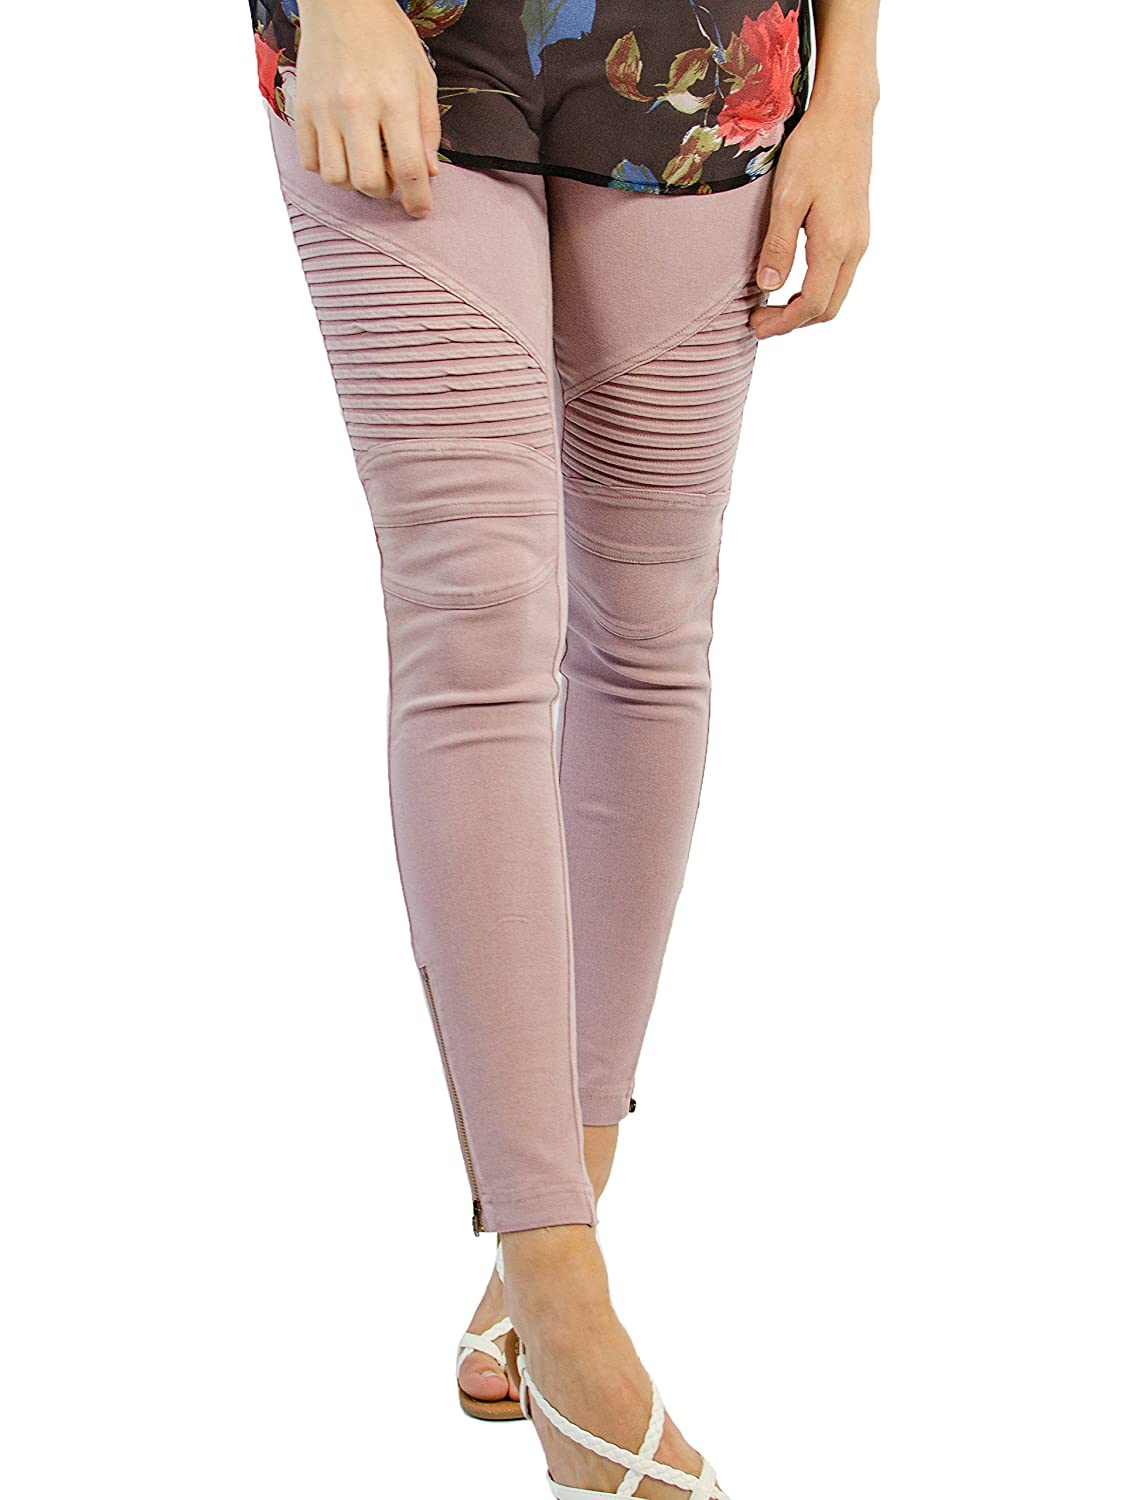 moto jeggings womens. tickled teal women\u0027s moto jegging - dusty pink jeggings womens